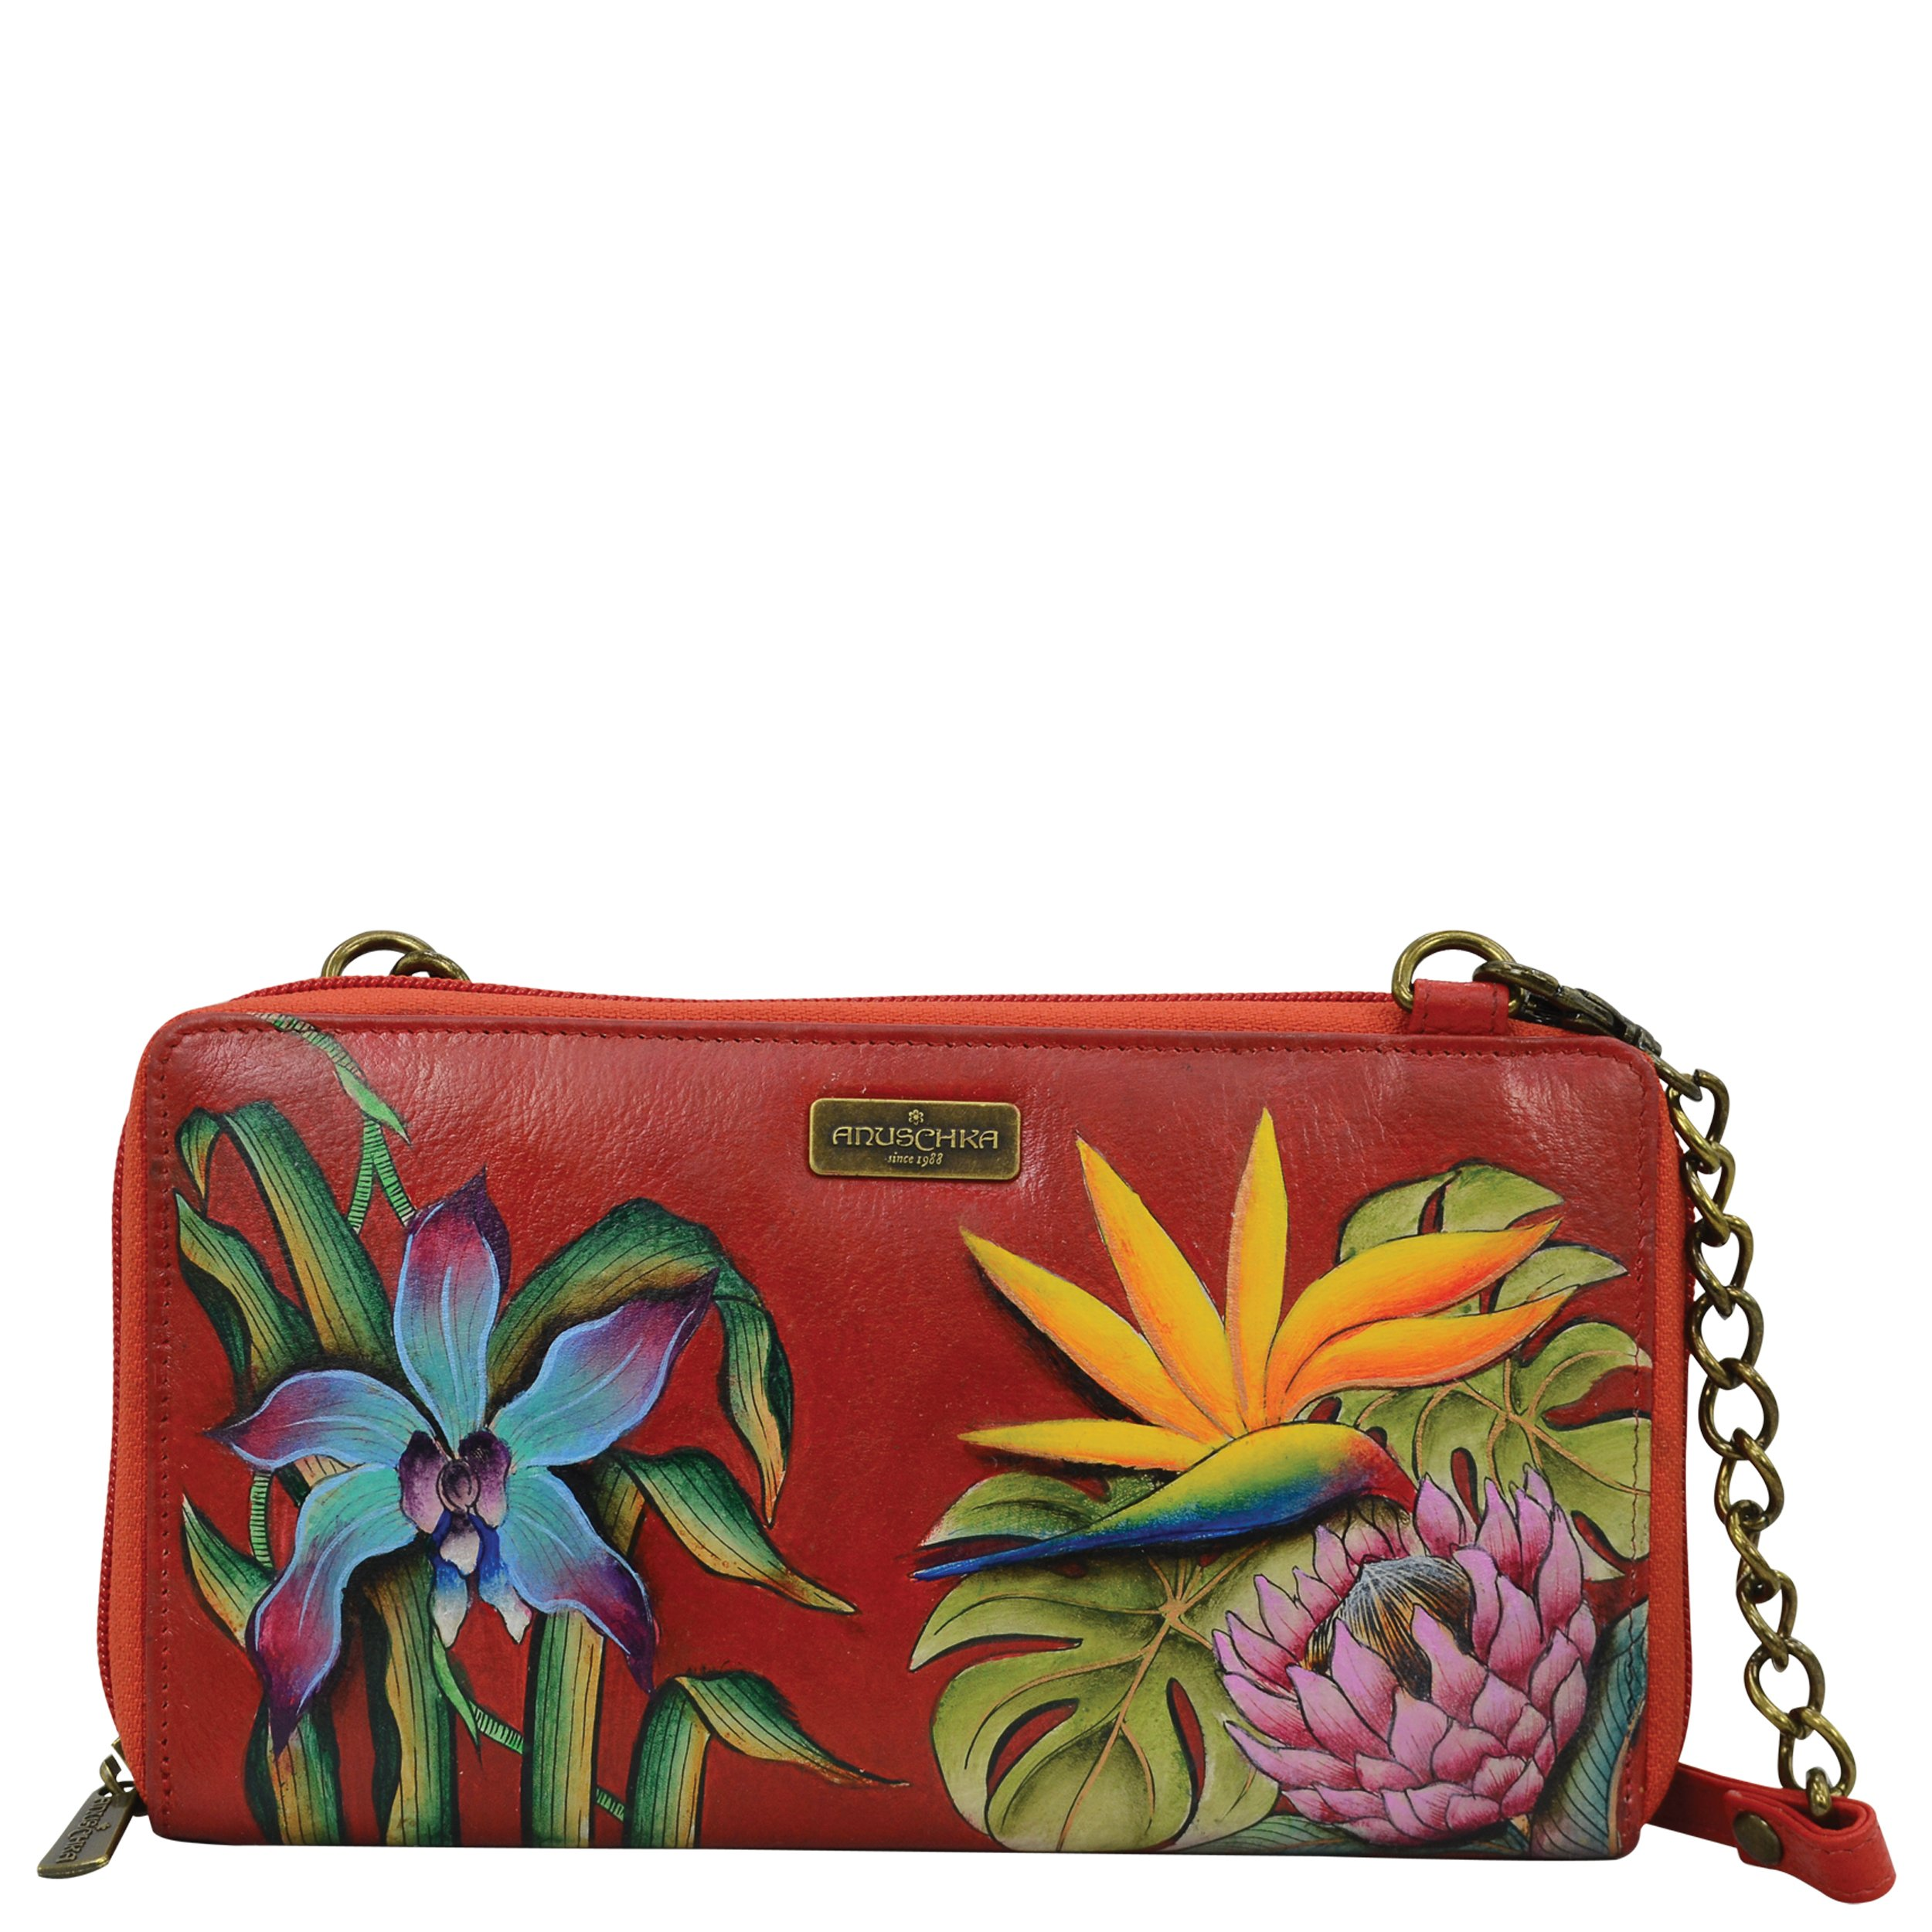 Anuschka Hand Painted Leather Women'S Zip Around Rfid Crossbody Clutch, Island Escape